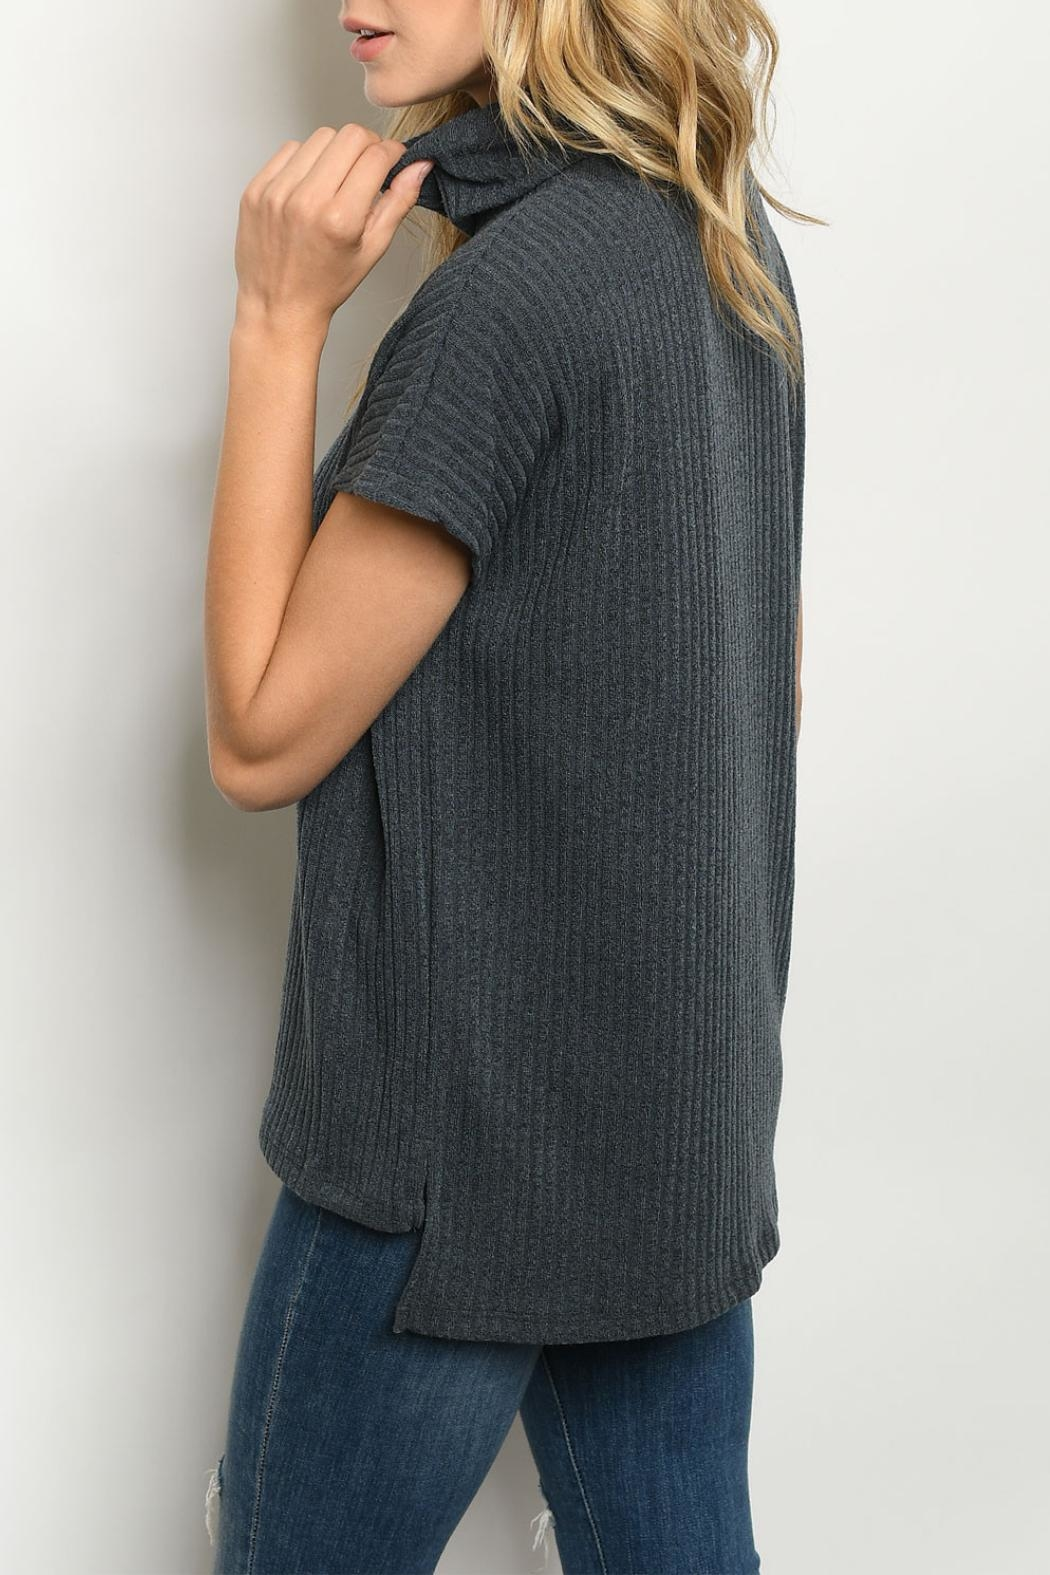 Ginger G Charcoal Cowl-Neck Top - Front Full Image